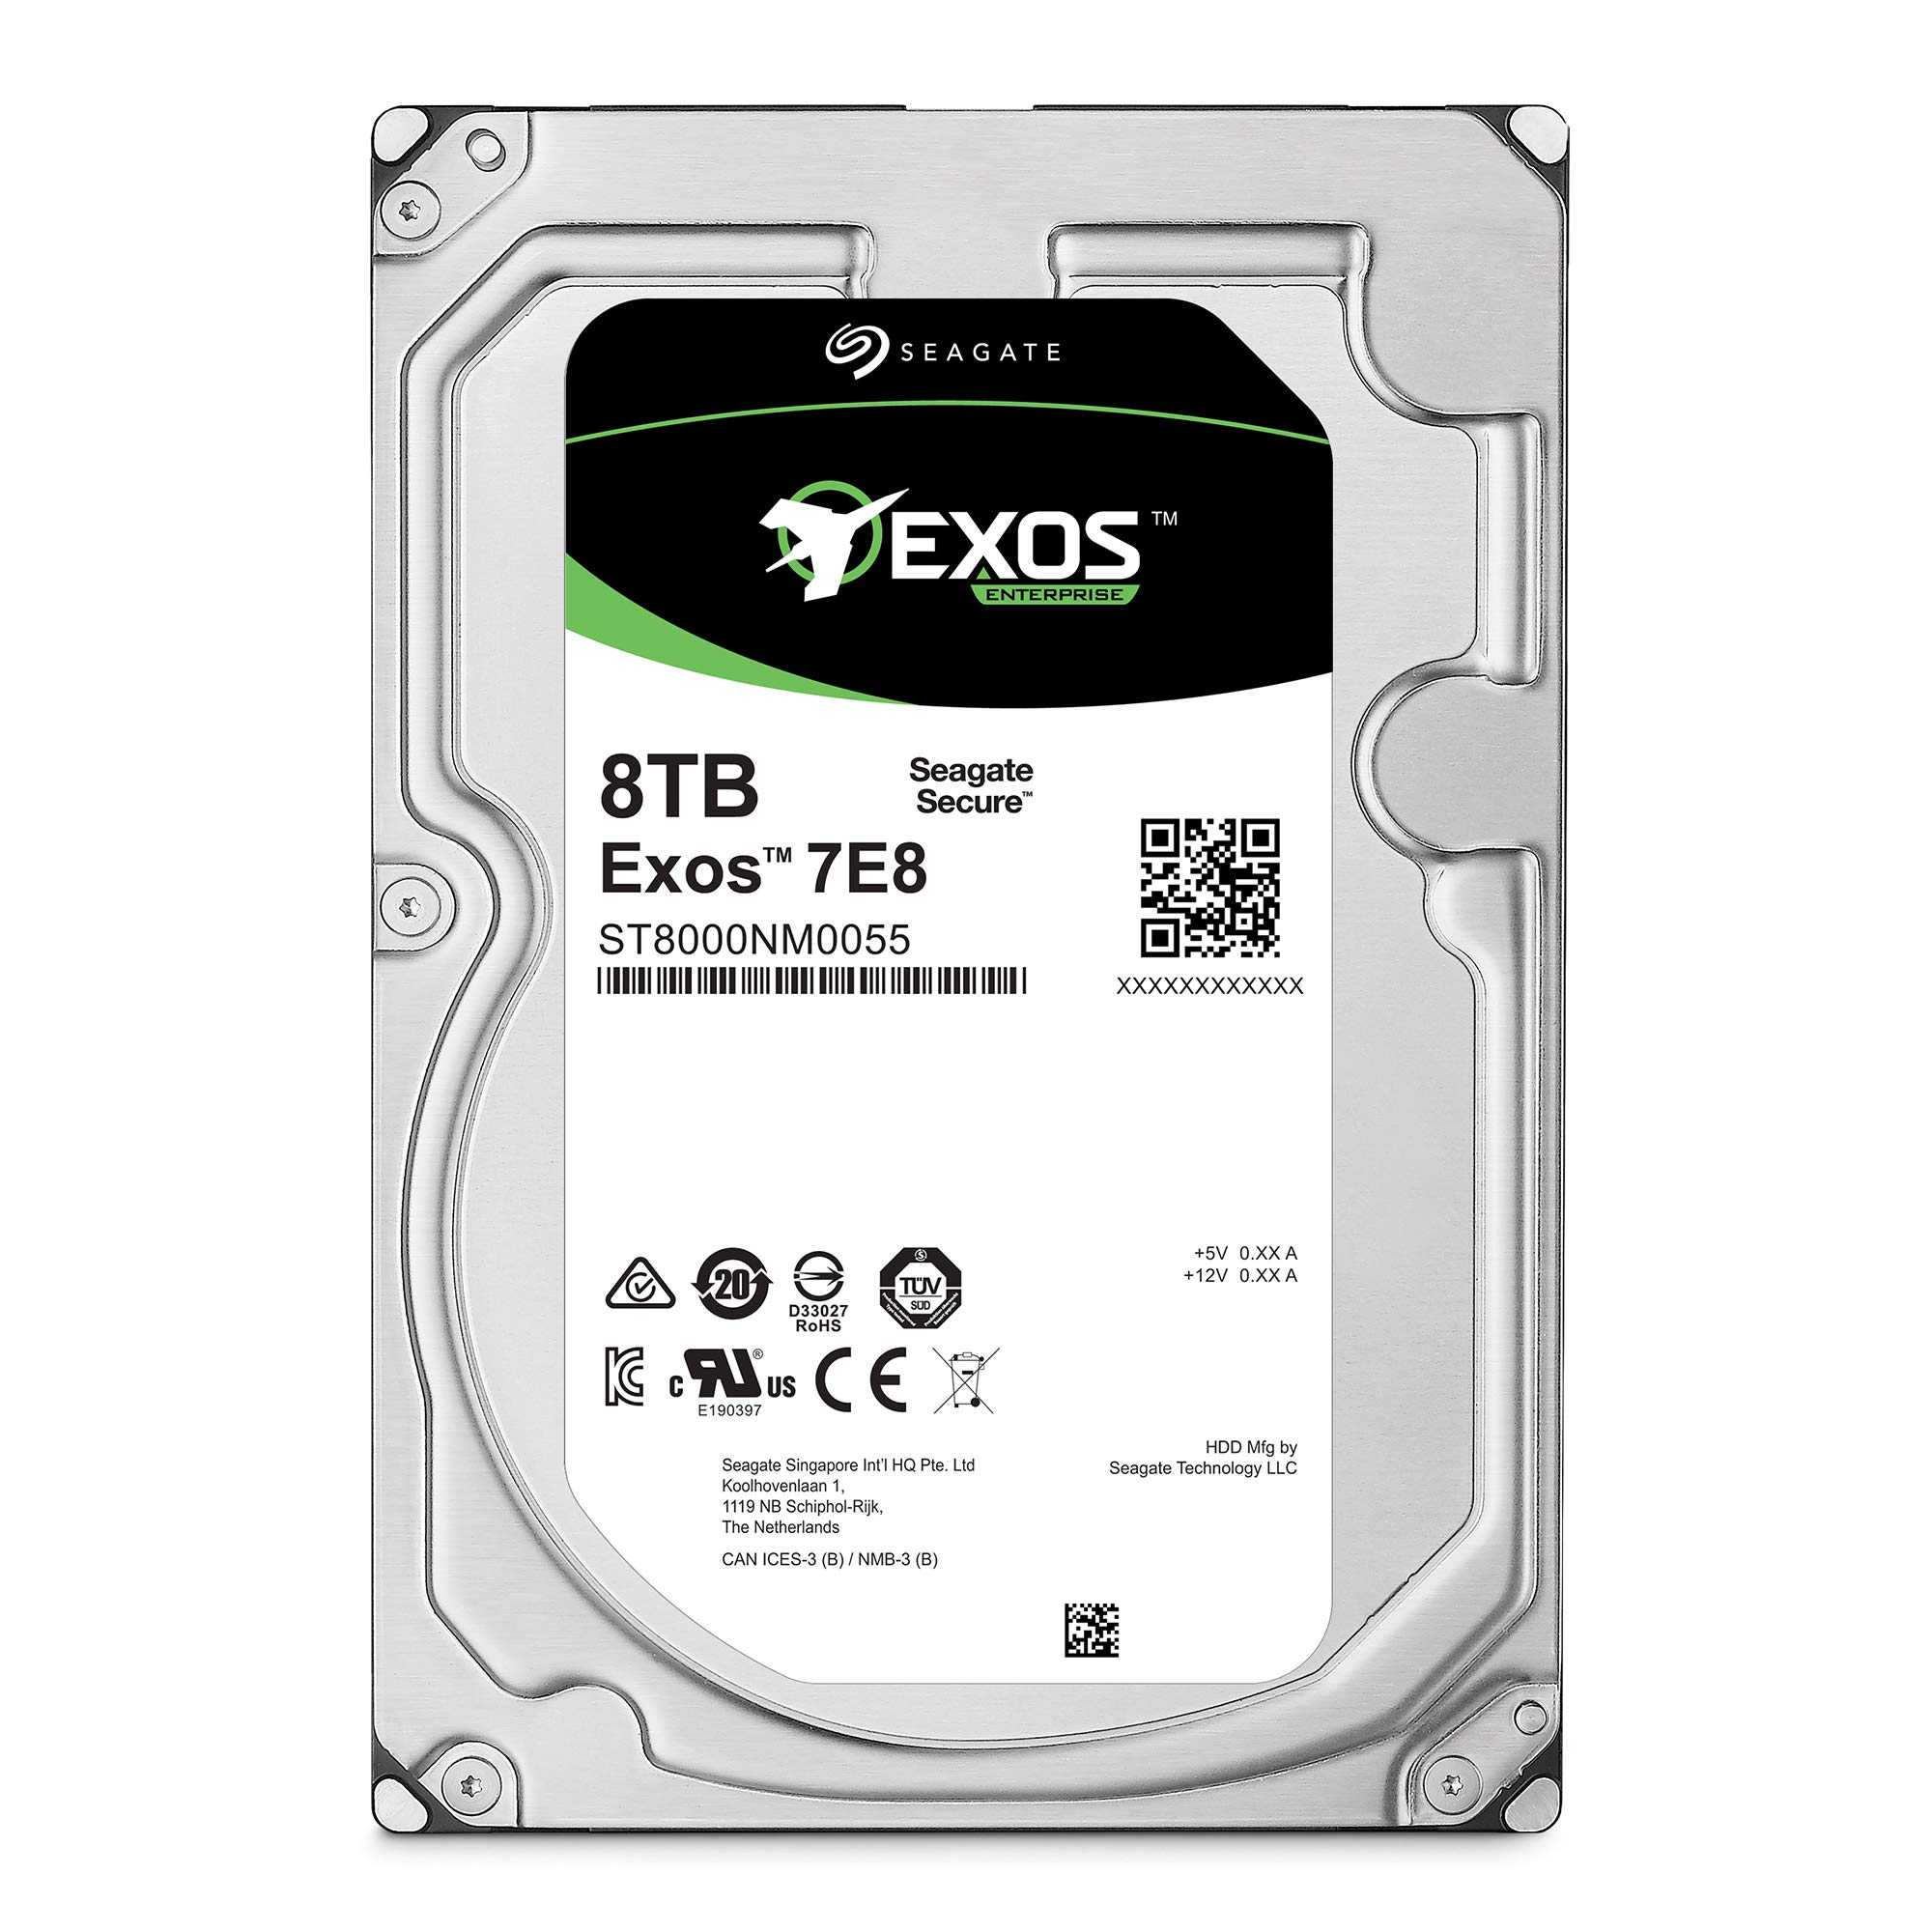 Seagate Exos 7E8 8TB Internal Hard Drive HDD - 3.5 Inch 6Gb/s 7200 RPM 128MB Cache for Enterprise, Data Center - Frustration Free Packaging (ST8000NM0055) by Seagate (Image #2)